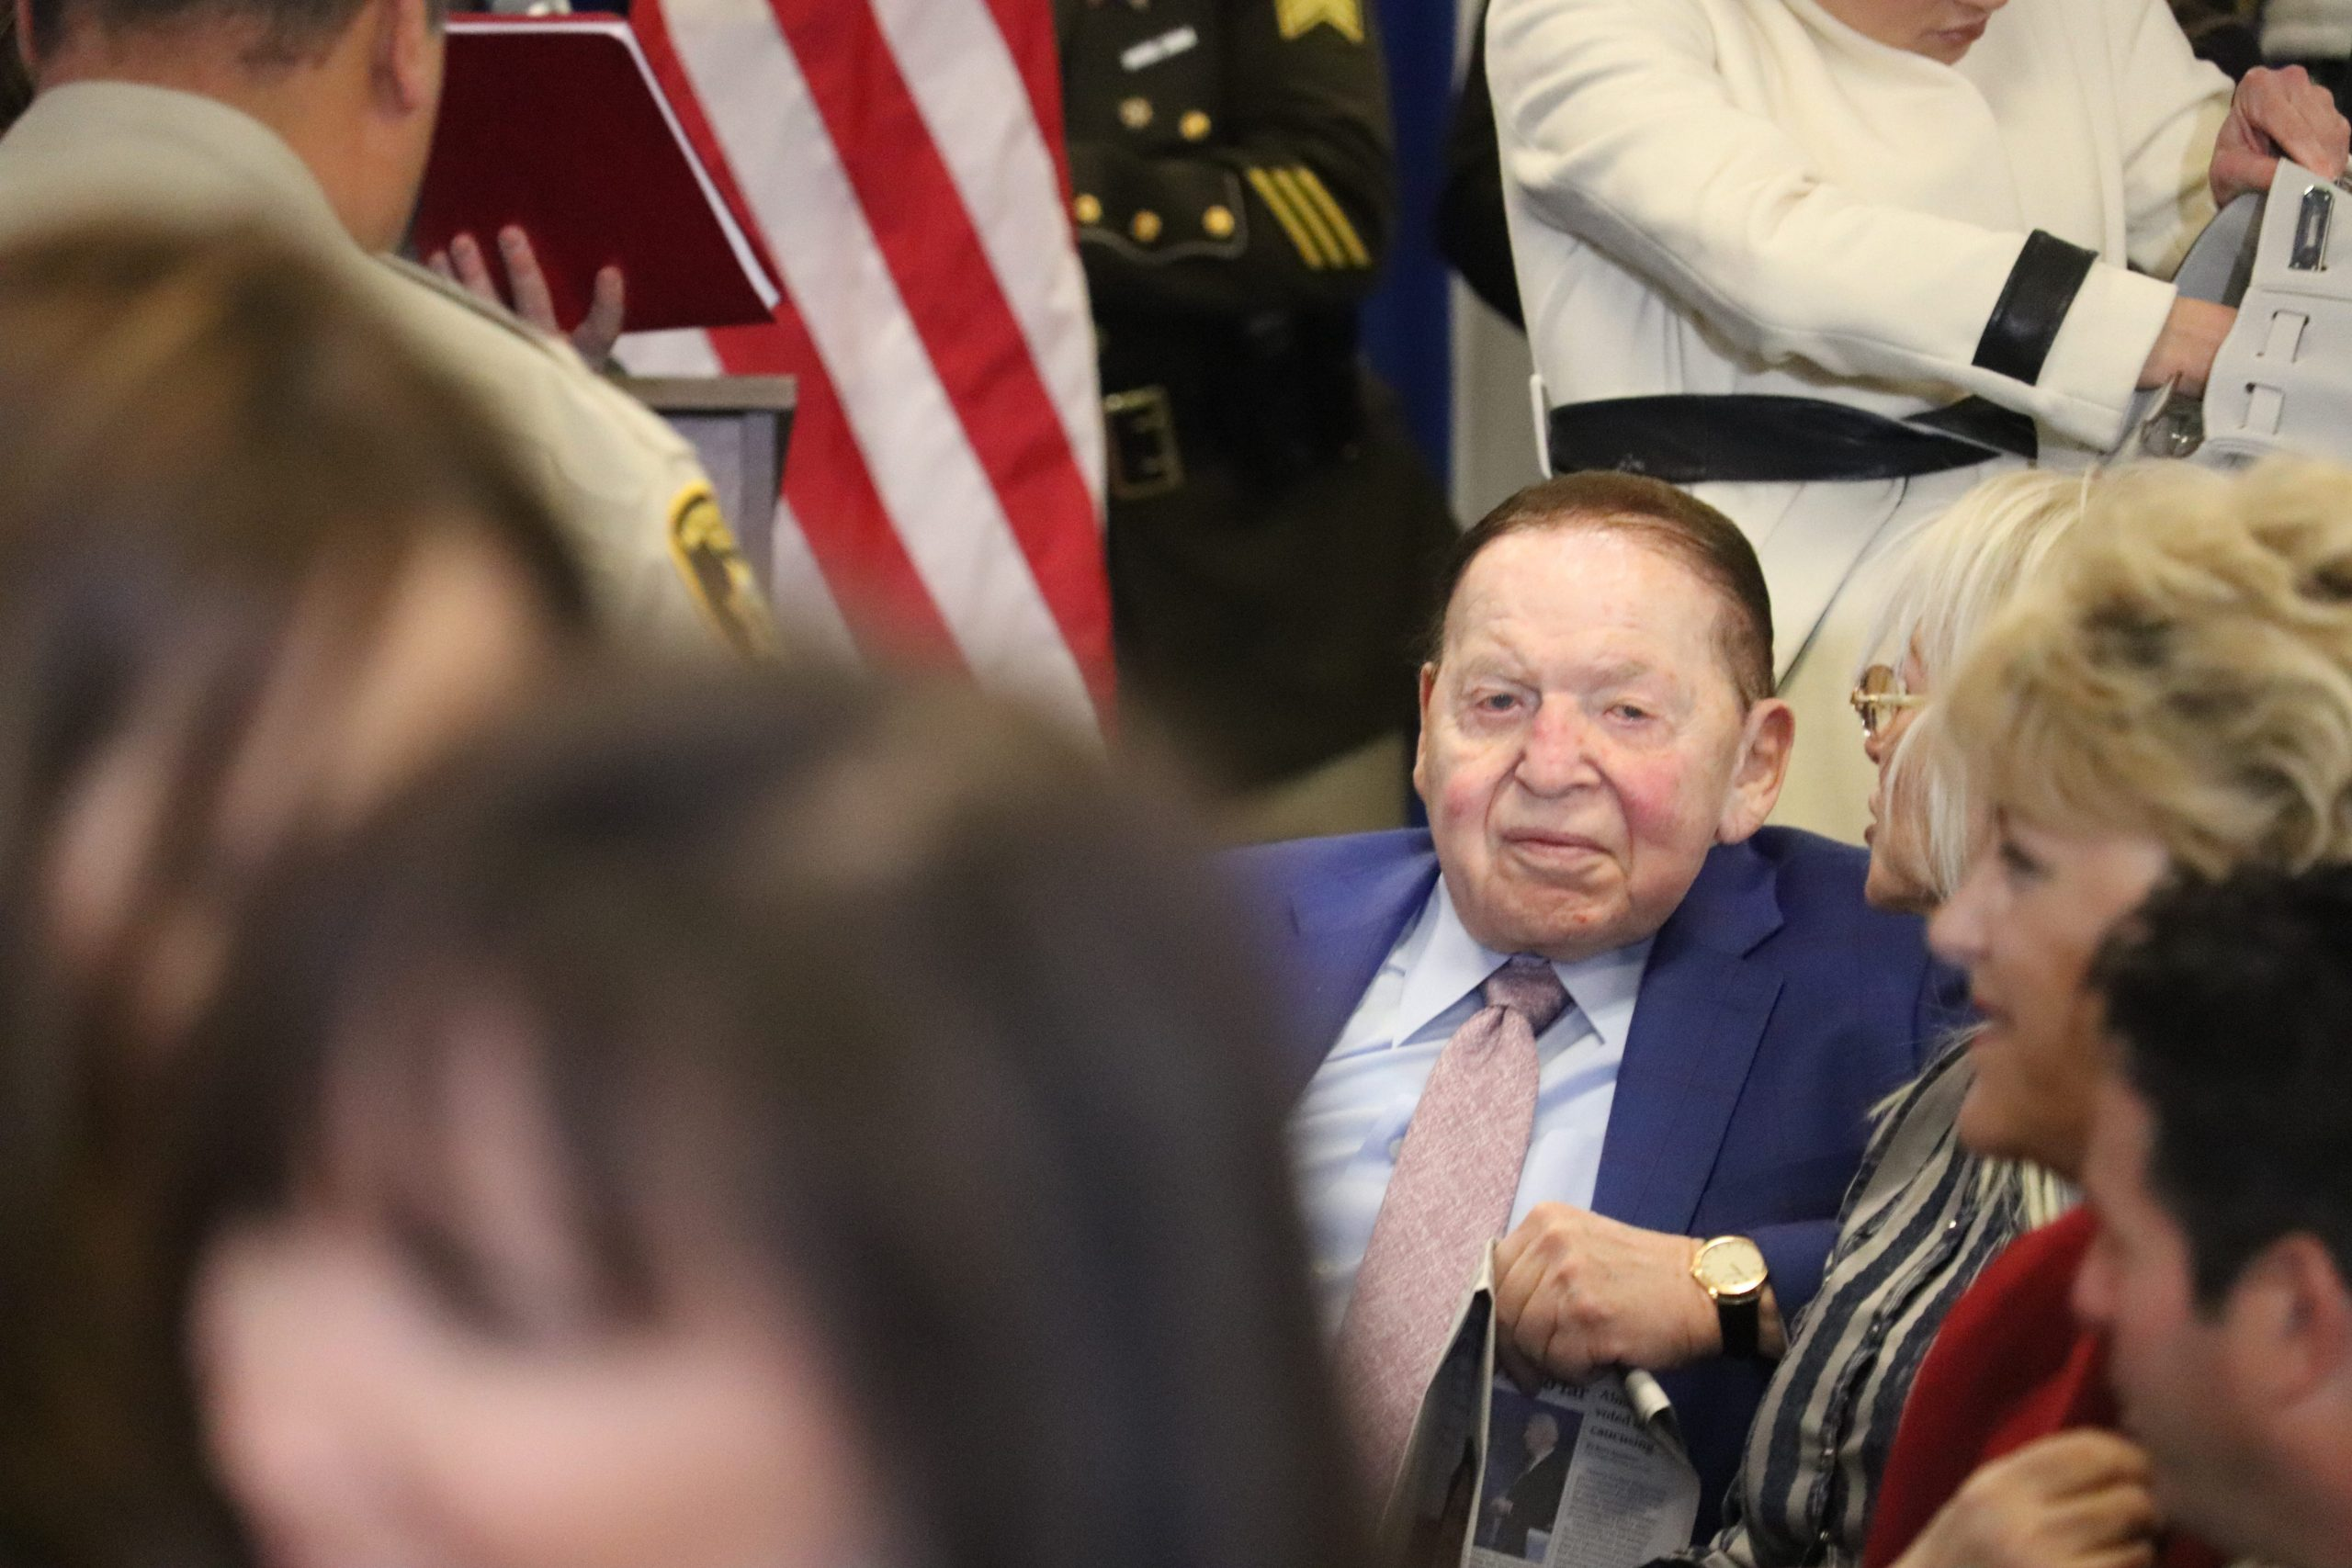 Sheldon Adelson dies: Casino mogul, Trump donor dead after non-Hodgkin's Lymphoma diagnosis